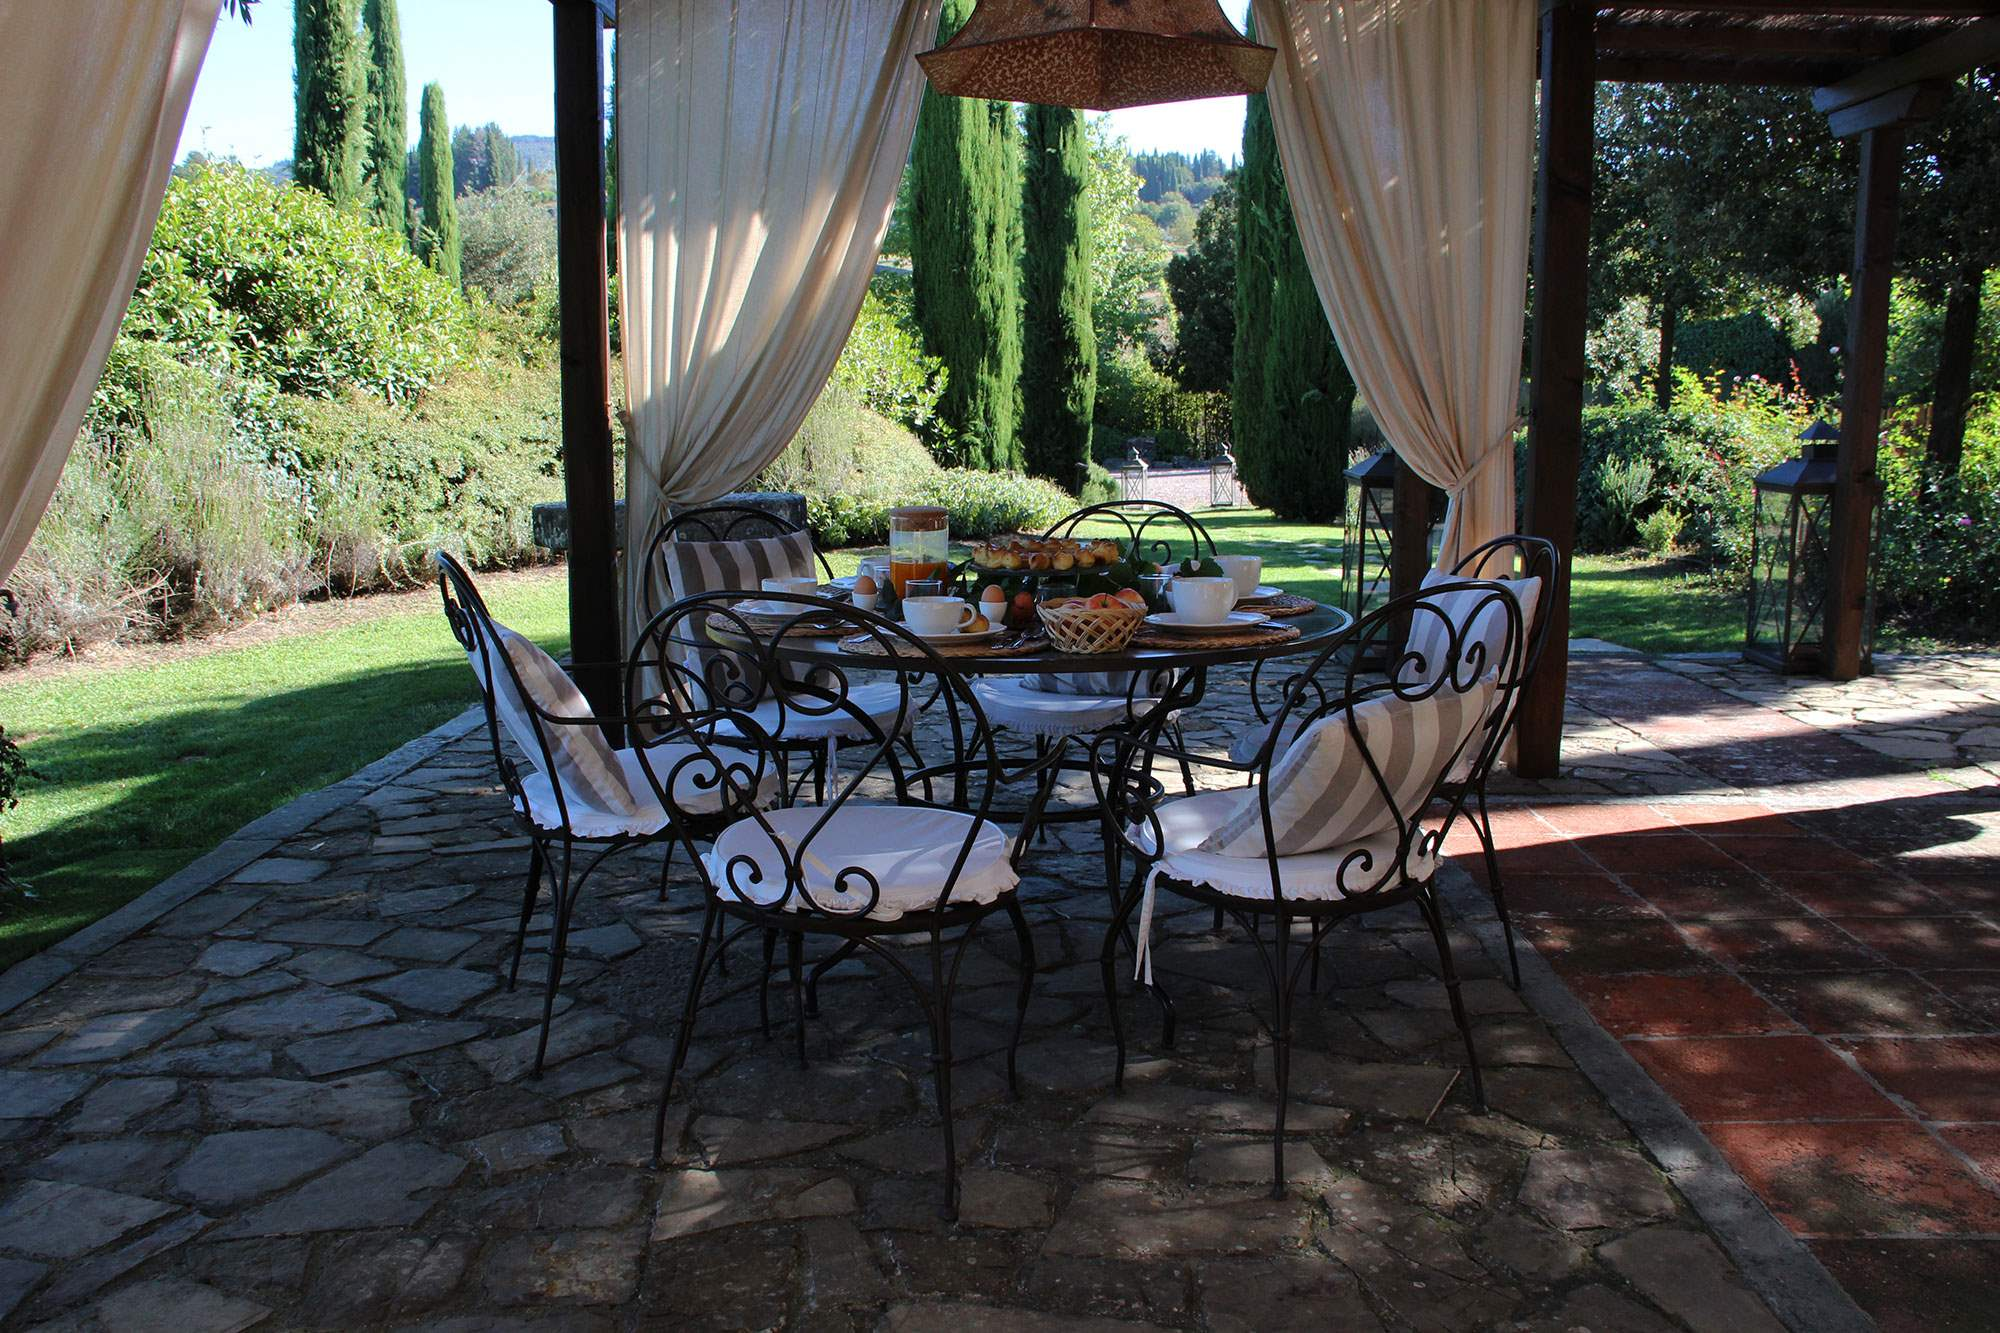 Villa Tuscan, 6 (+2), 3 bedroom villa in Chianti & Countryside, Tuscany Photo #5